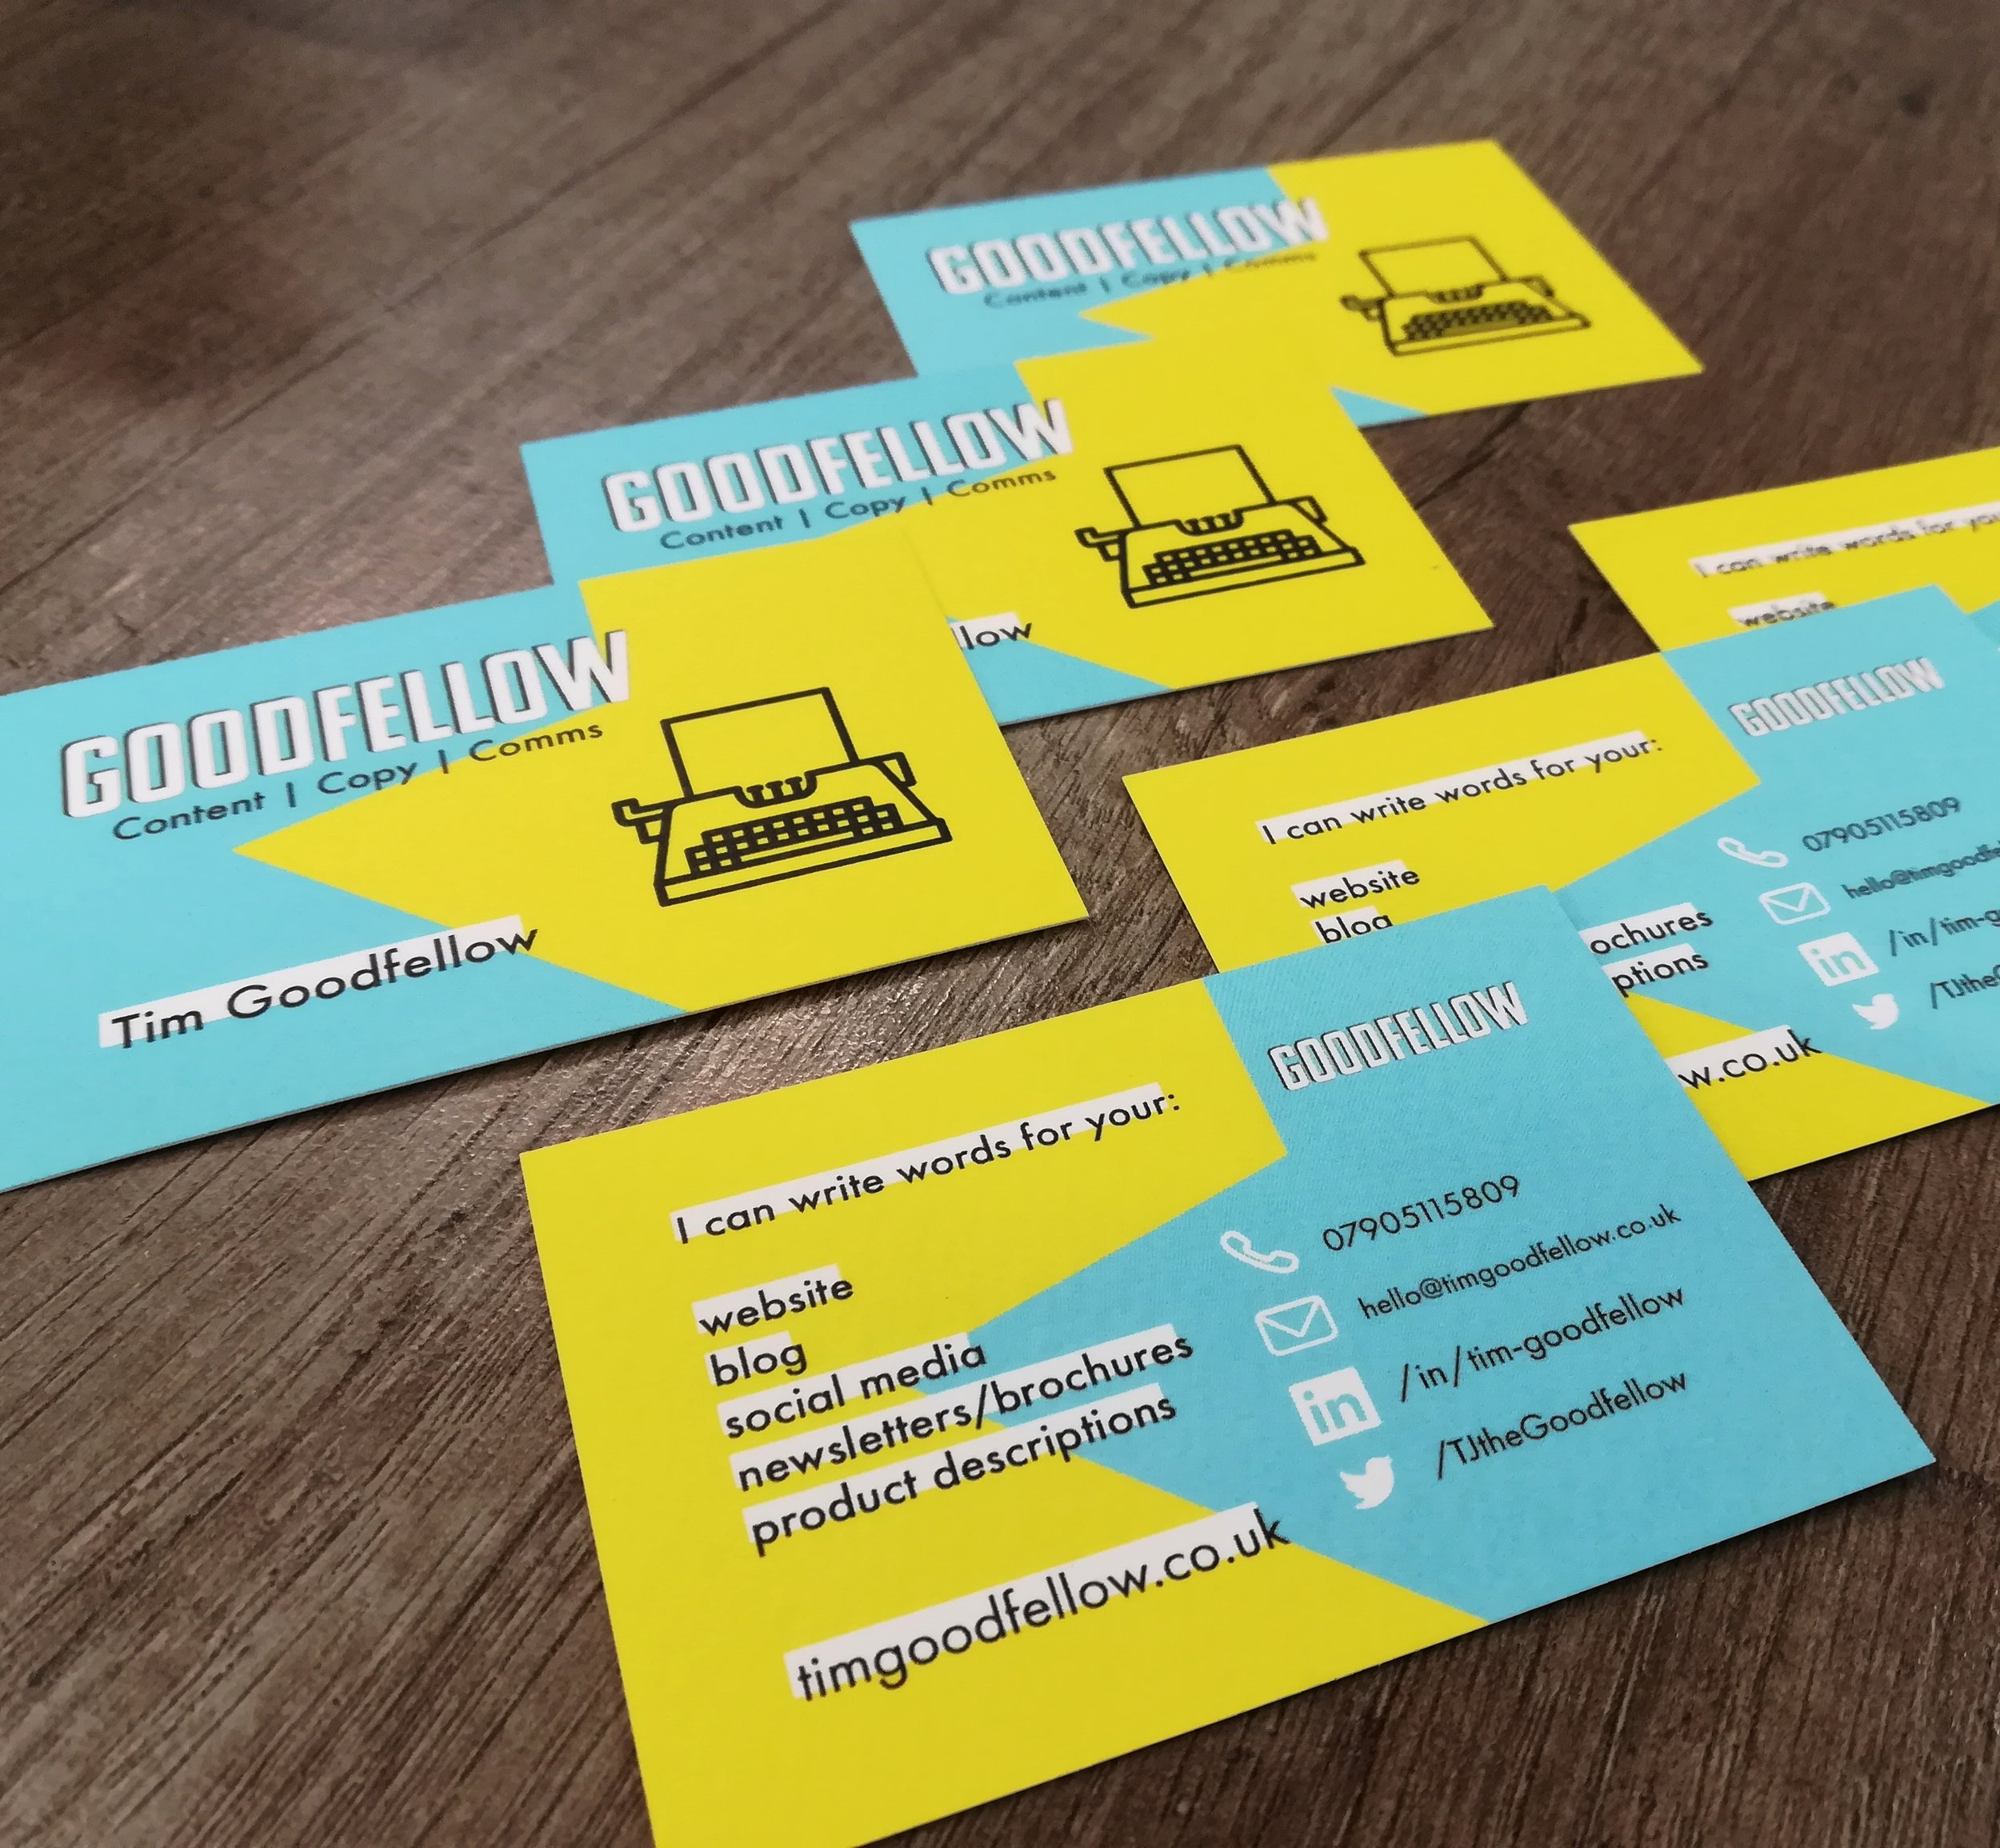 The Goodfellow Content business cards.